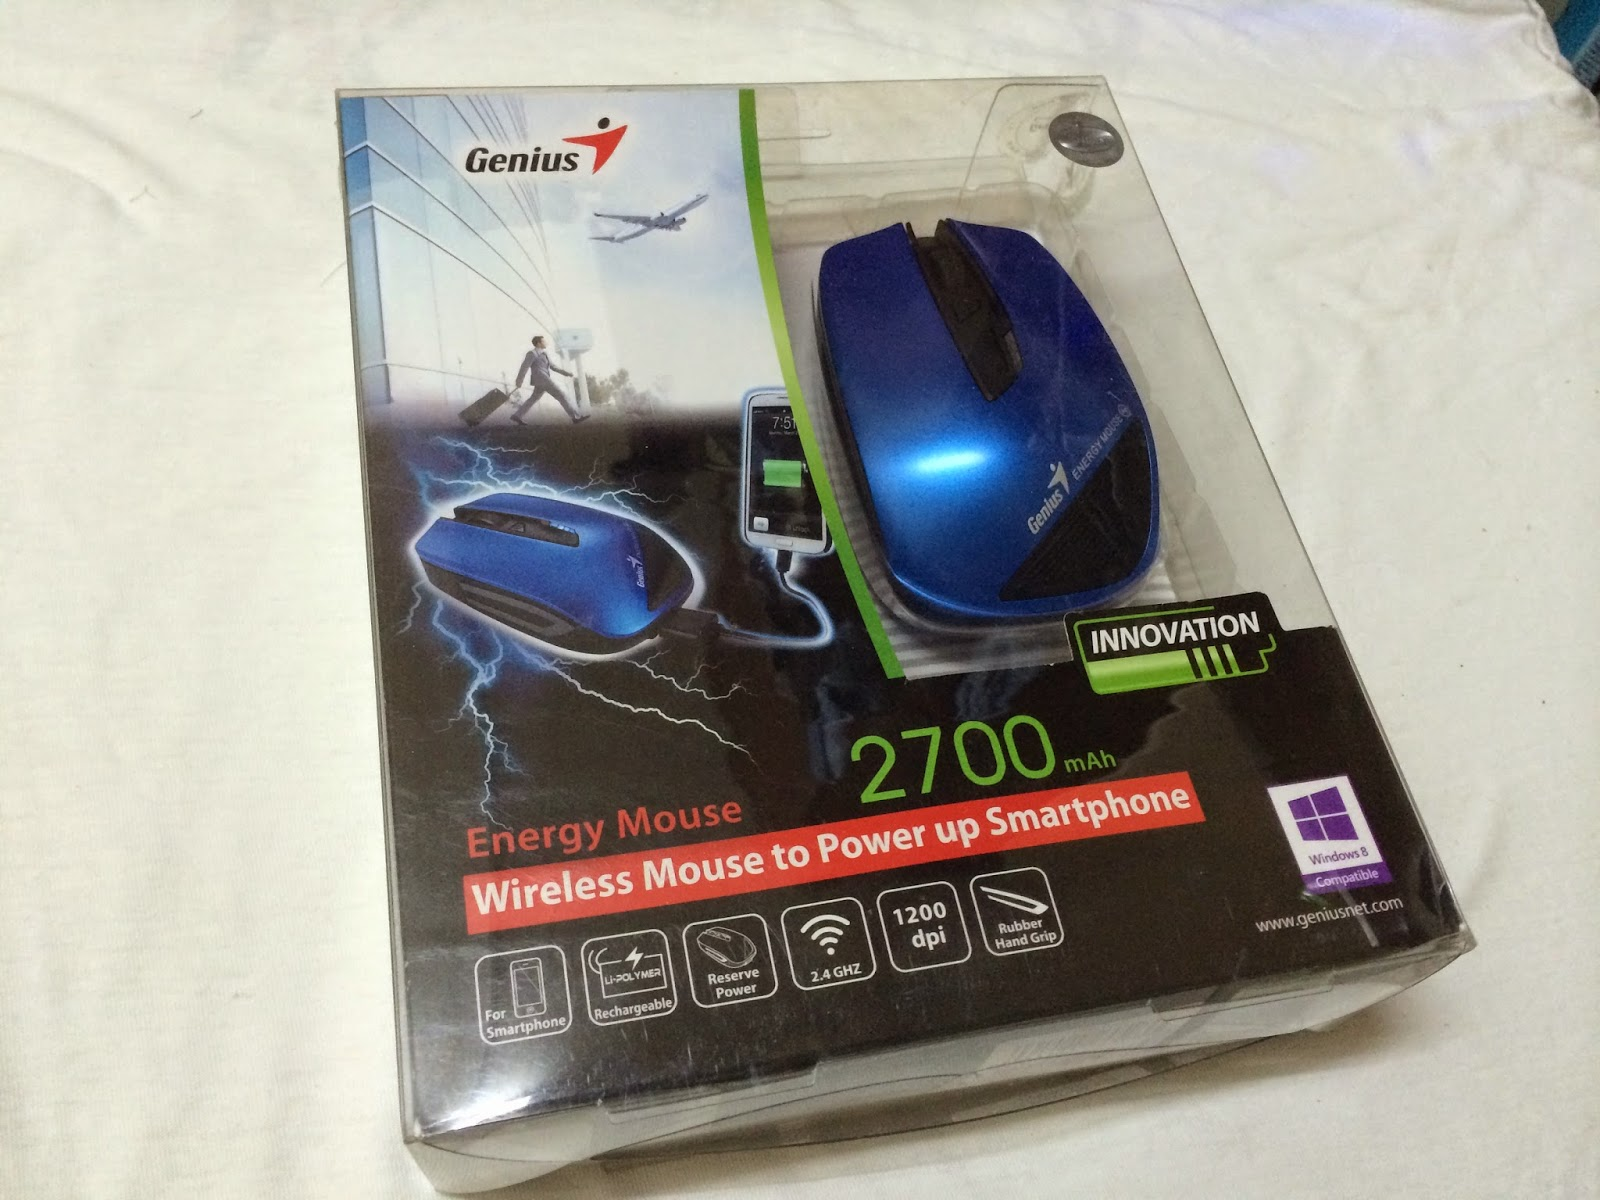 Unboxing & Review: Genius Energy Mouse 2